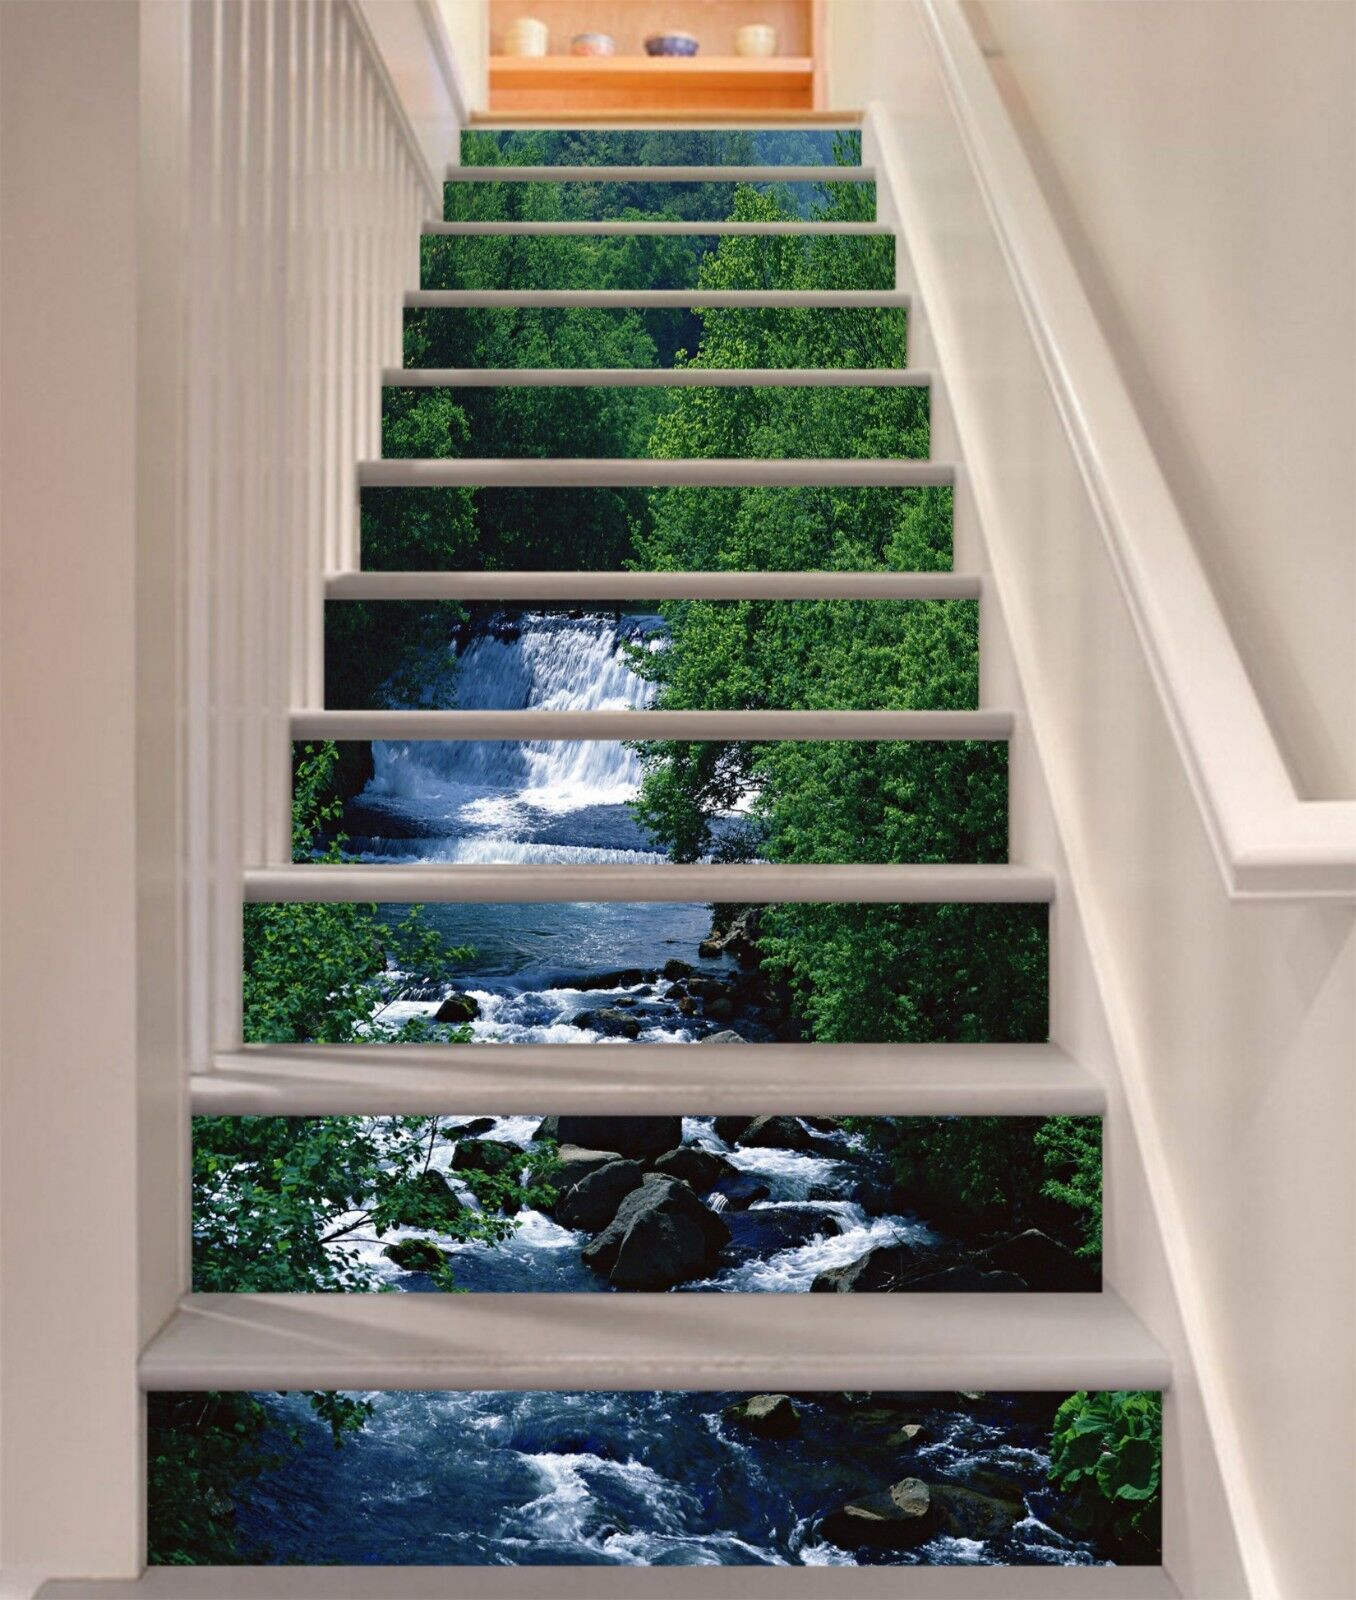 3D Trees Water Stair Risers Decoration Photo Mural Vinyl Decal Wallpaper CA